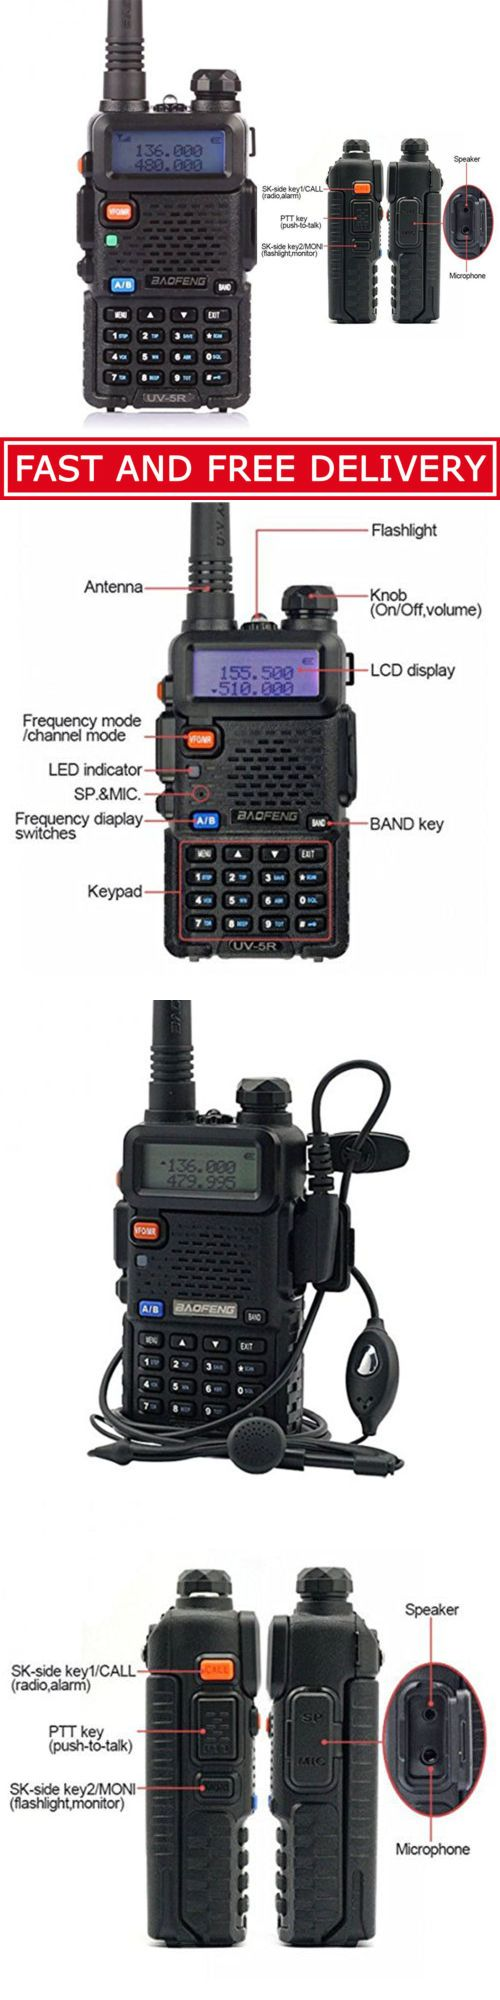 Scanners: Police Radio Scanner Portable Handheld Two Way Digital Pro Mobile Transceiver -> BUY IT NOW ONLY: $32.98 on eBay!